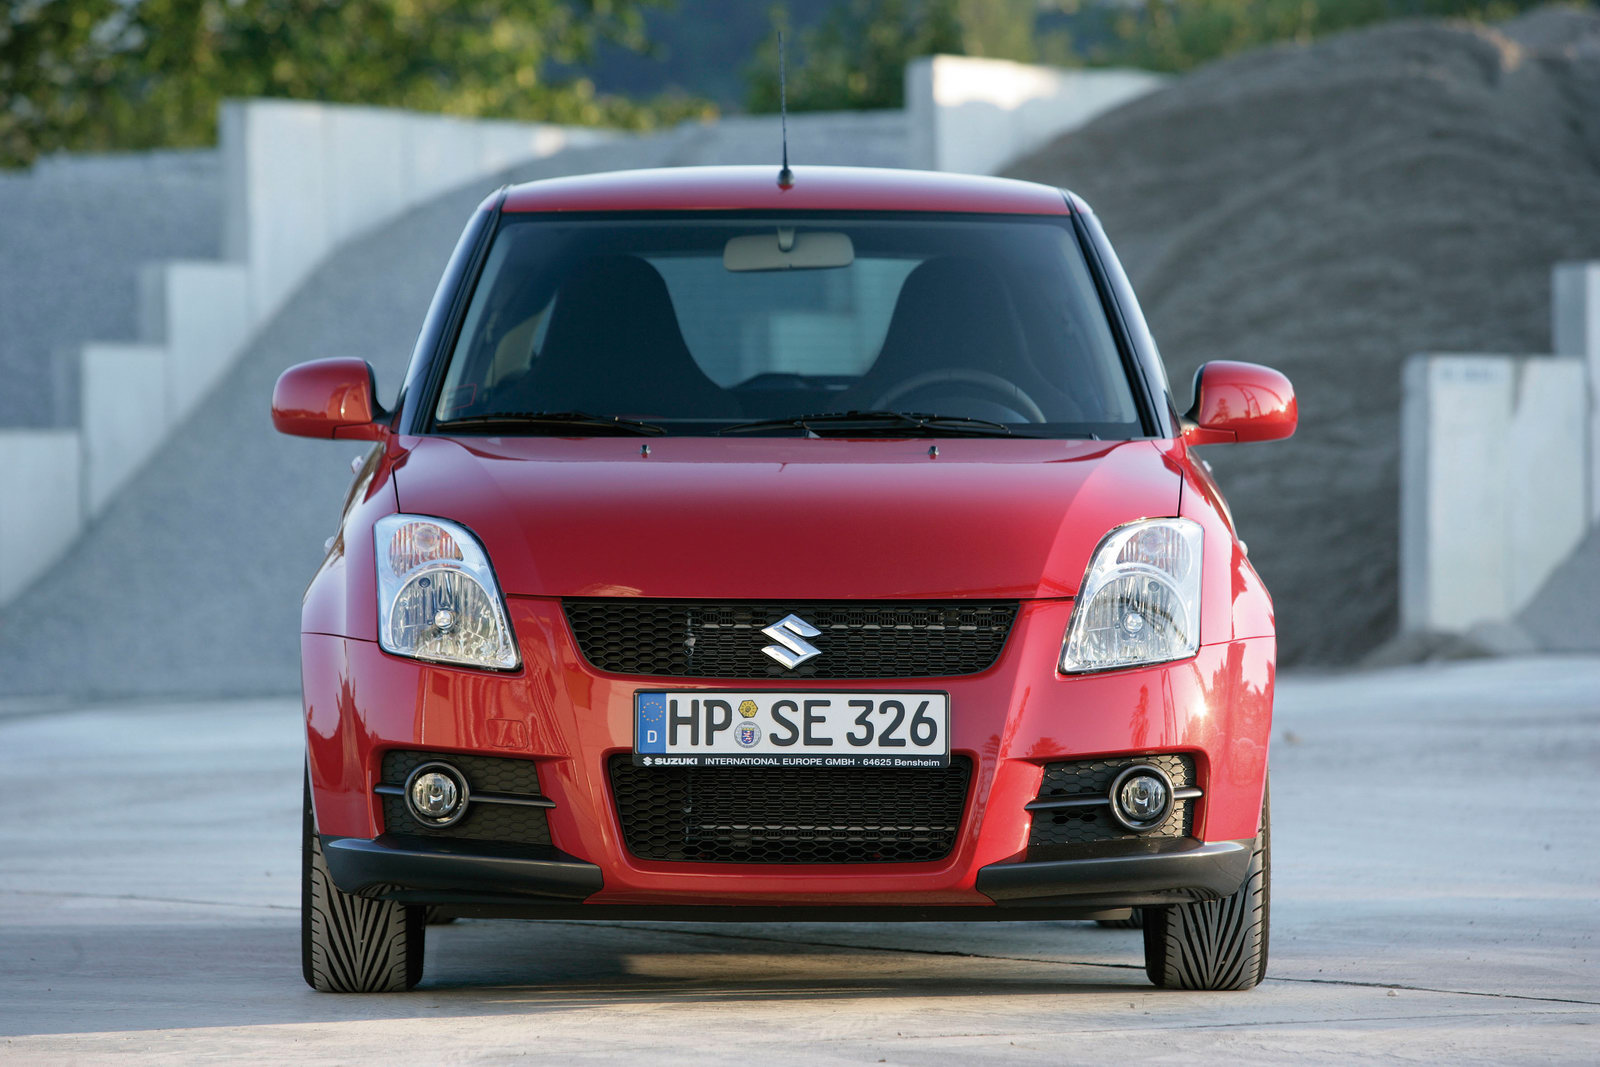 Suzuki May Recall Up To 280 000 Swifts And Three Other